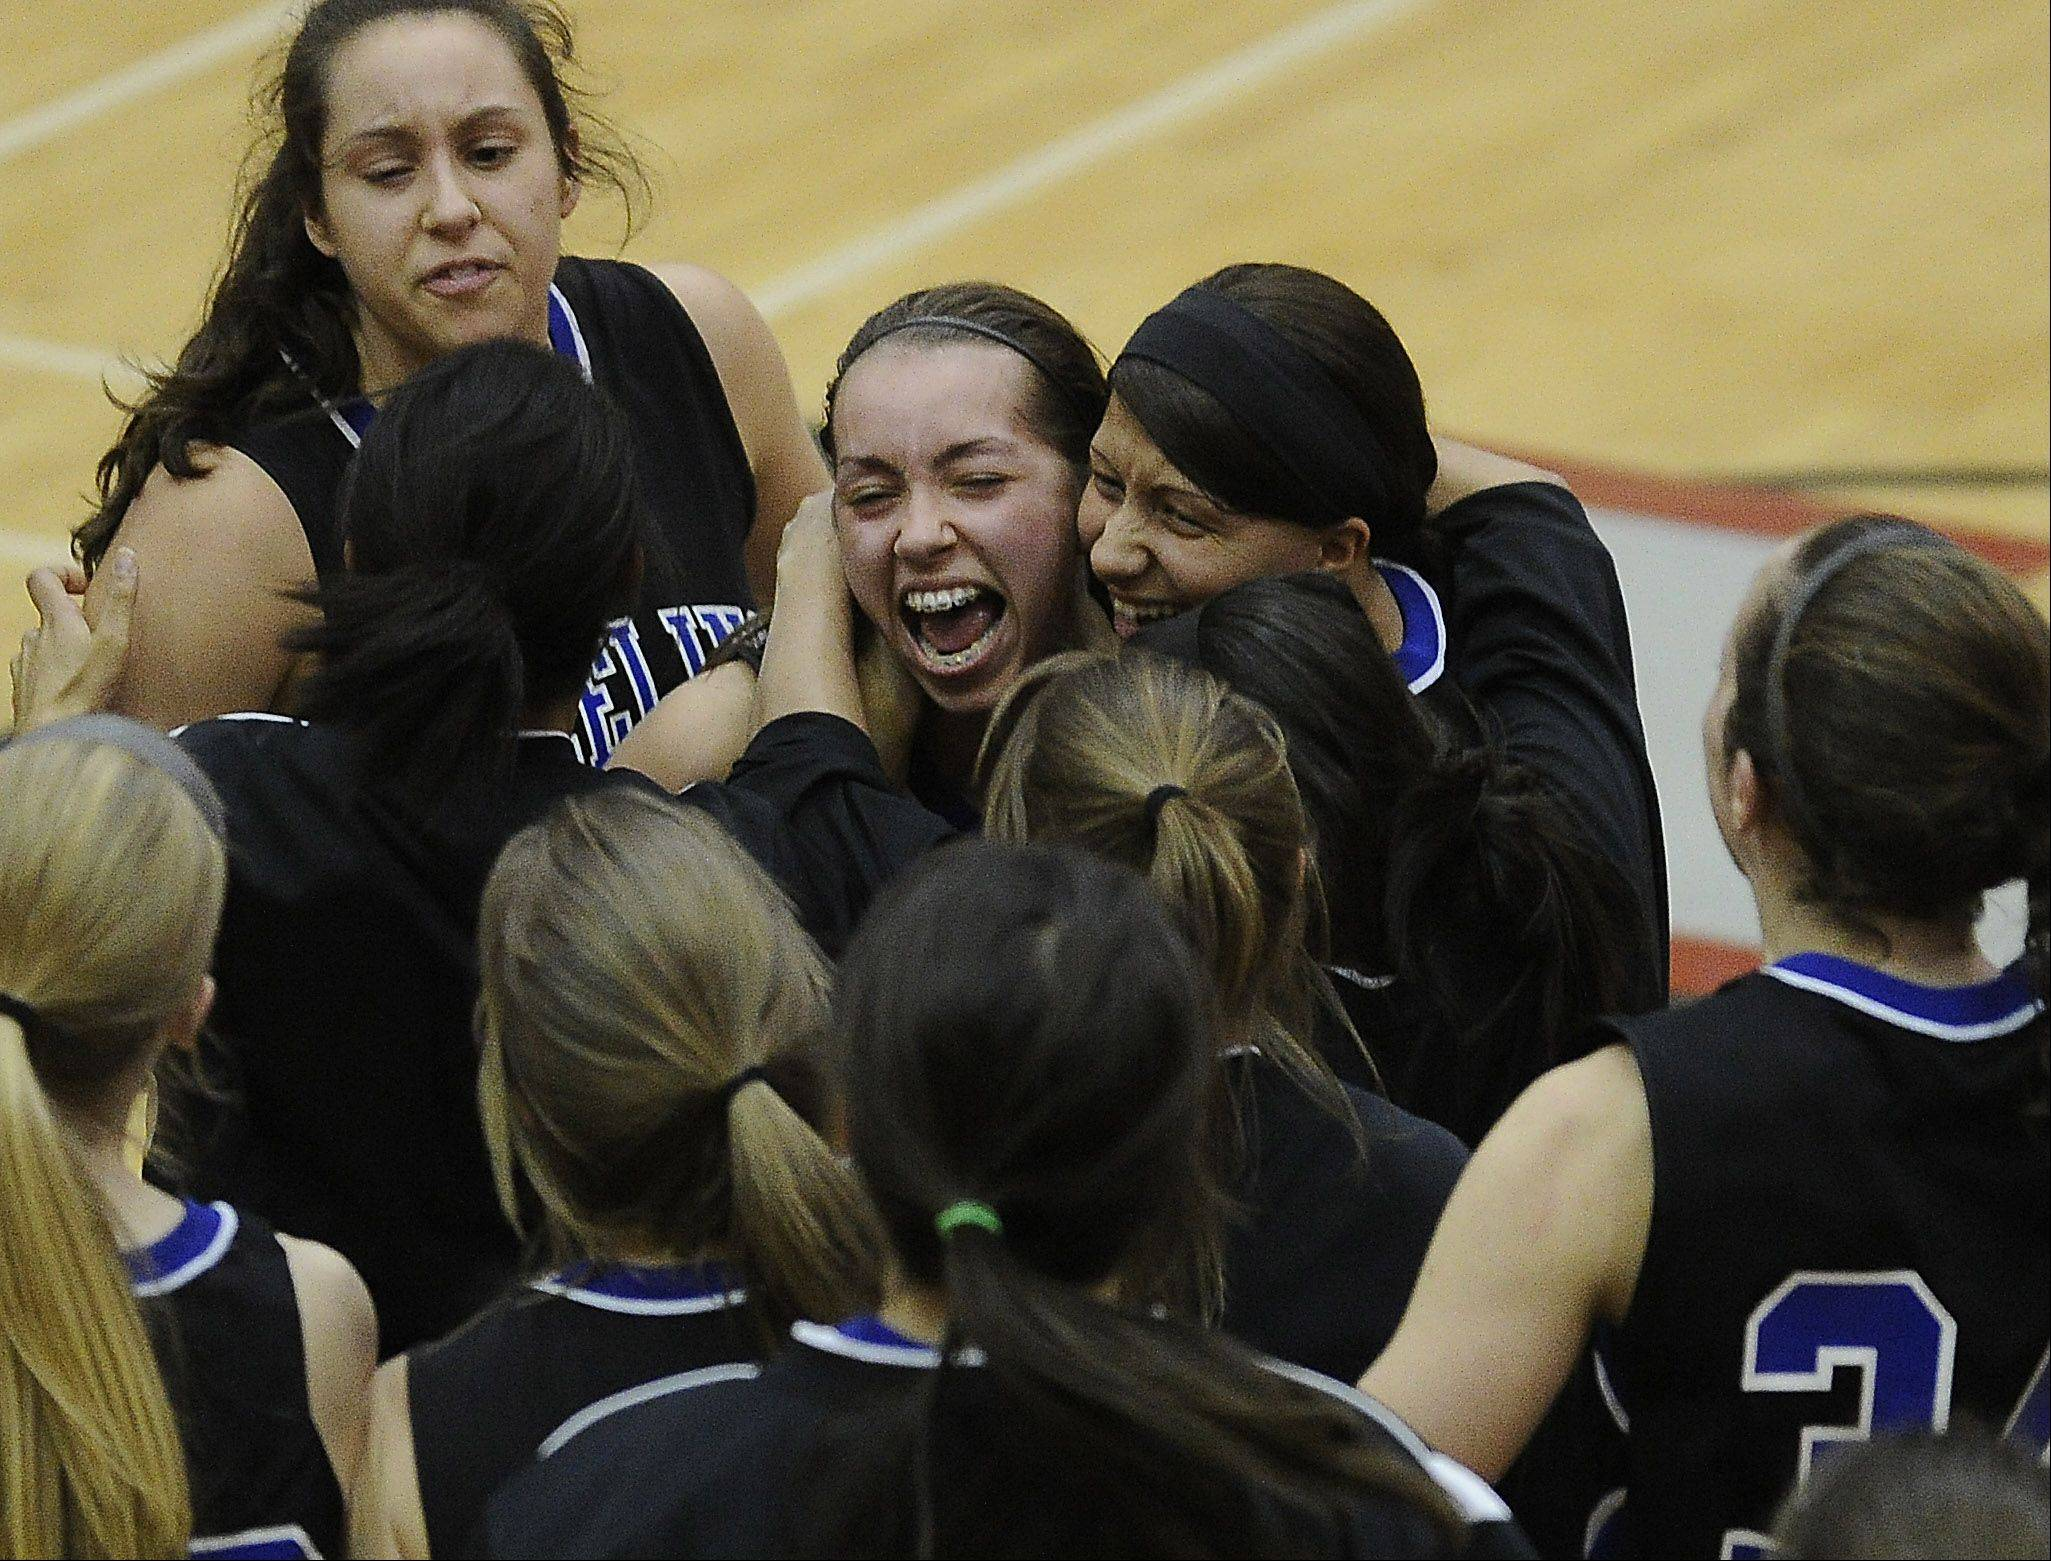 Wheeling's Deanna Kuzmanic celebrates the Wildcats' victory over Zion-Benton with the rest of her teammates in the Class 4A sectional final at Palatine High School on Thursday.